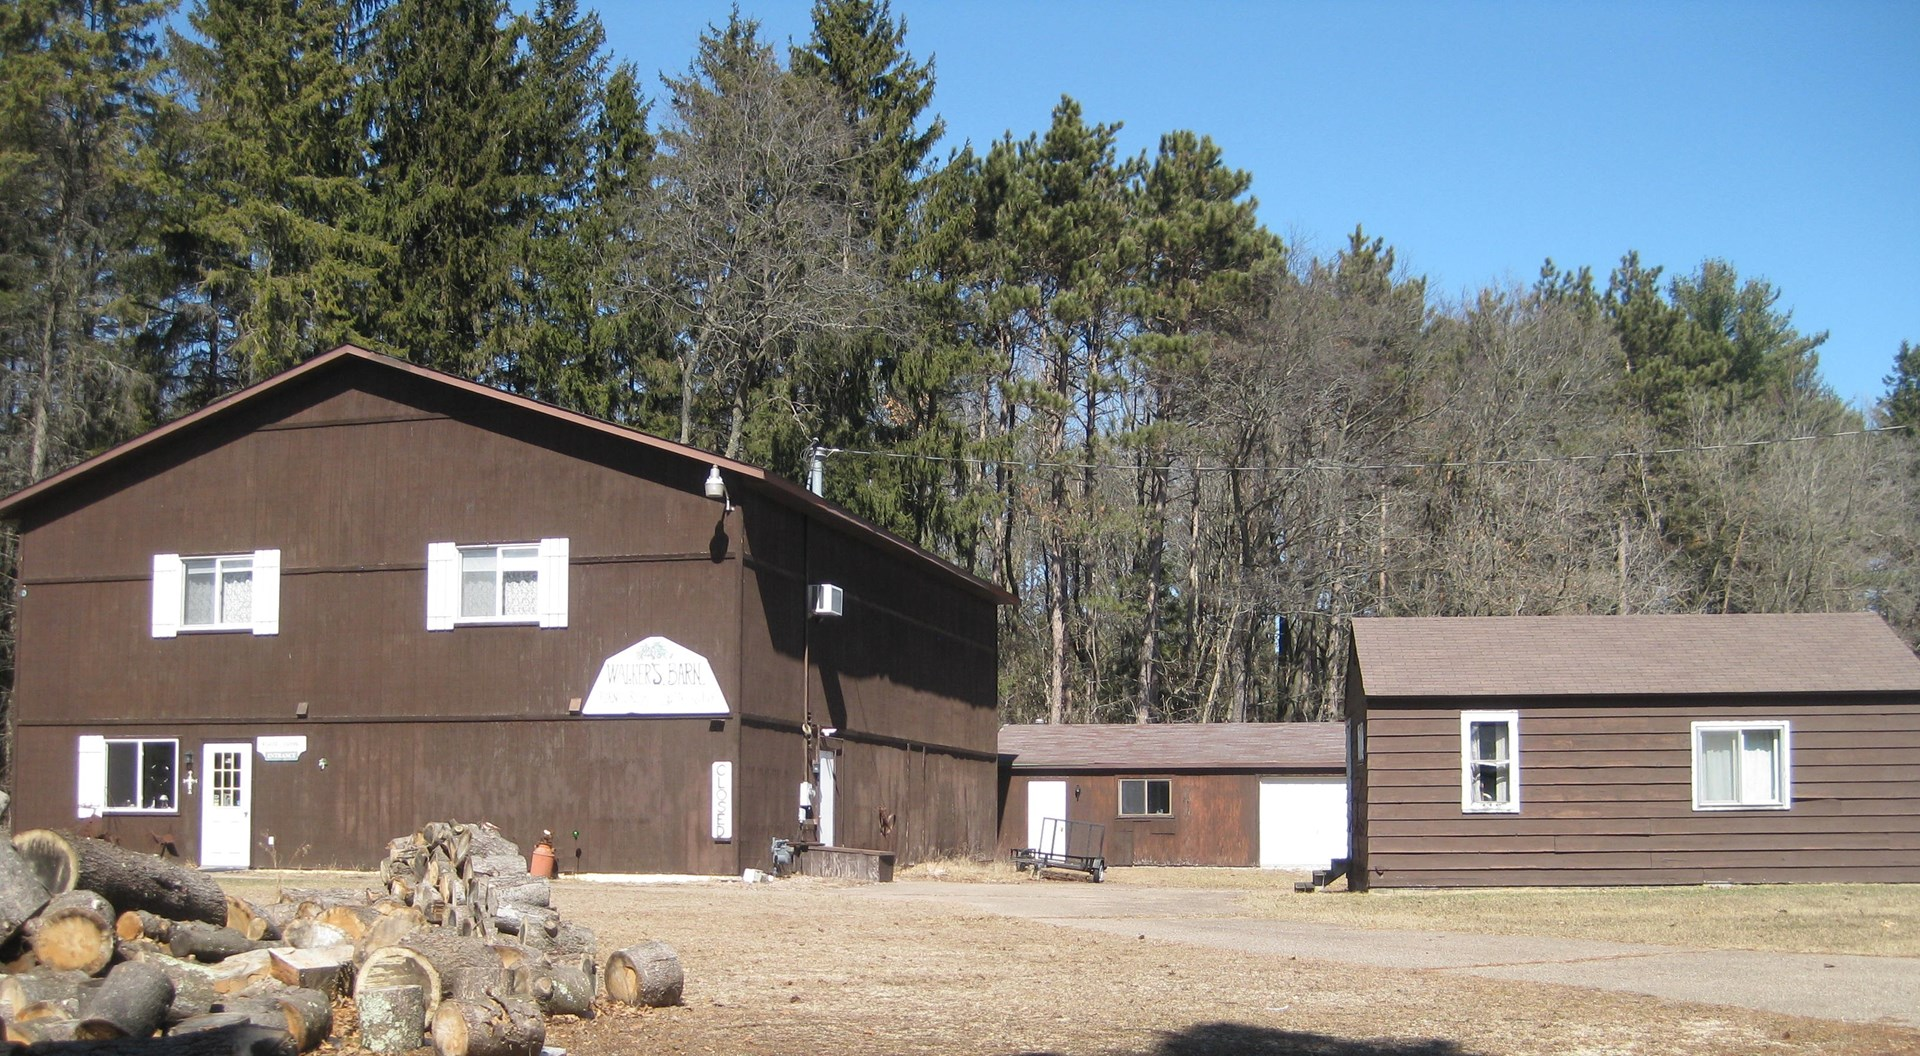 Commercial Barn Business Opportunity for sale Waupaca, WI